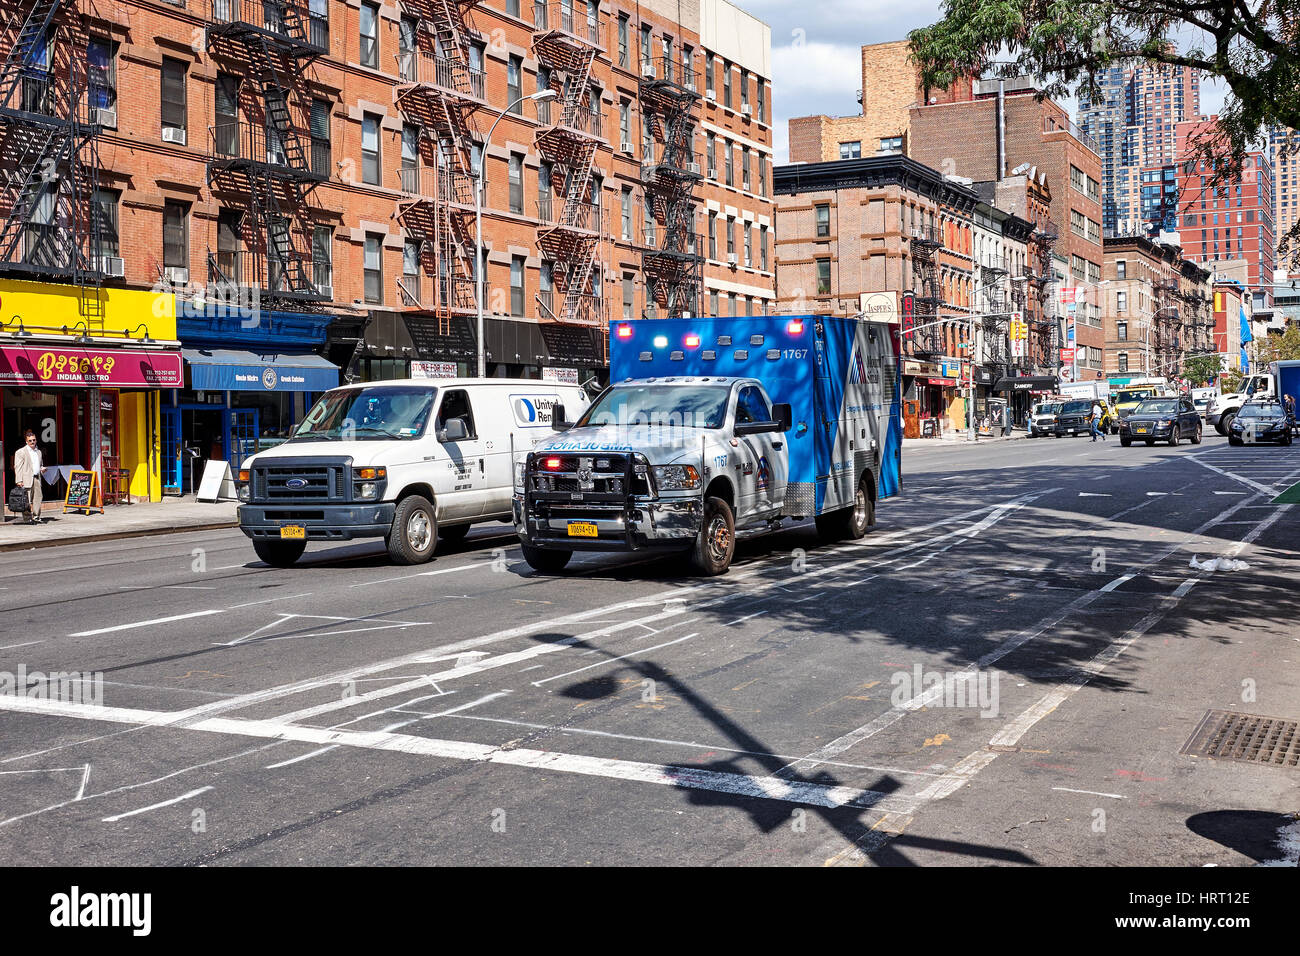 NEW YORK CITY - SEPTEMBER 26, 2016: Ambulance with emergency light and a small truck on 9th Avenue and 51st W Street Stock Photo